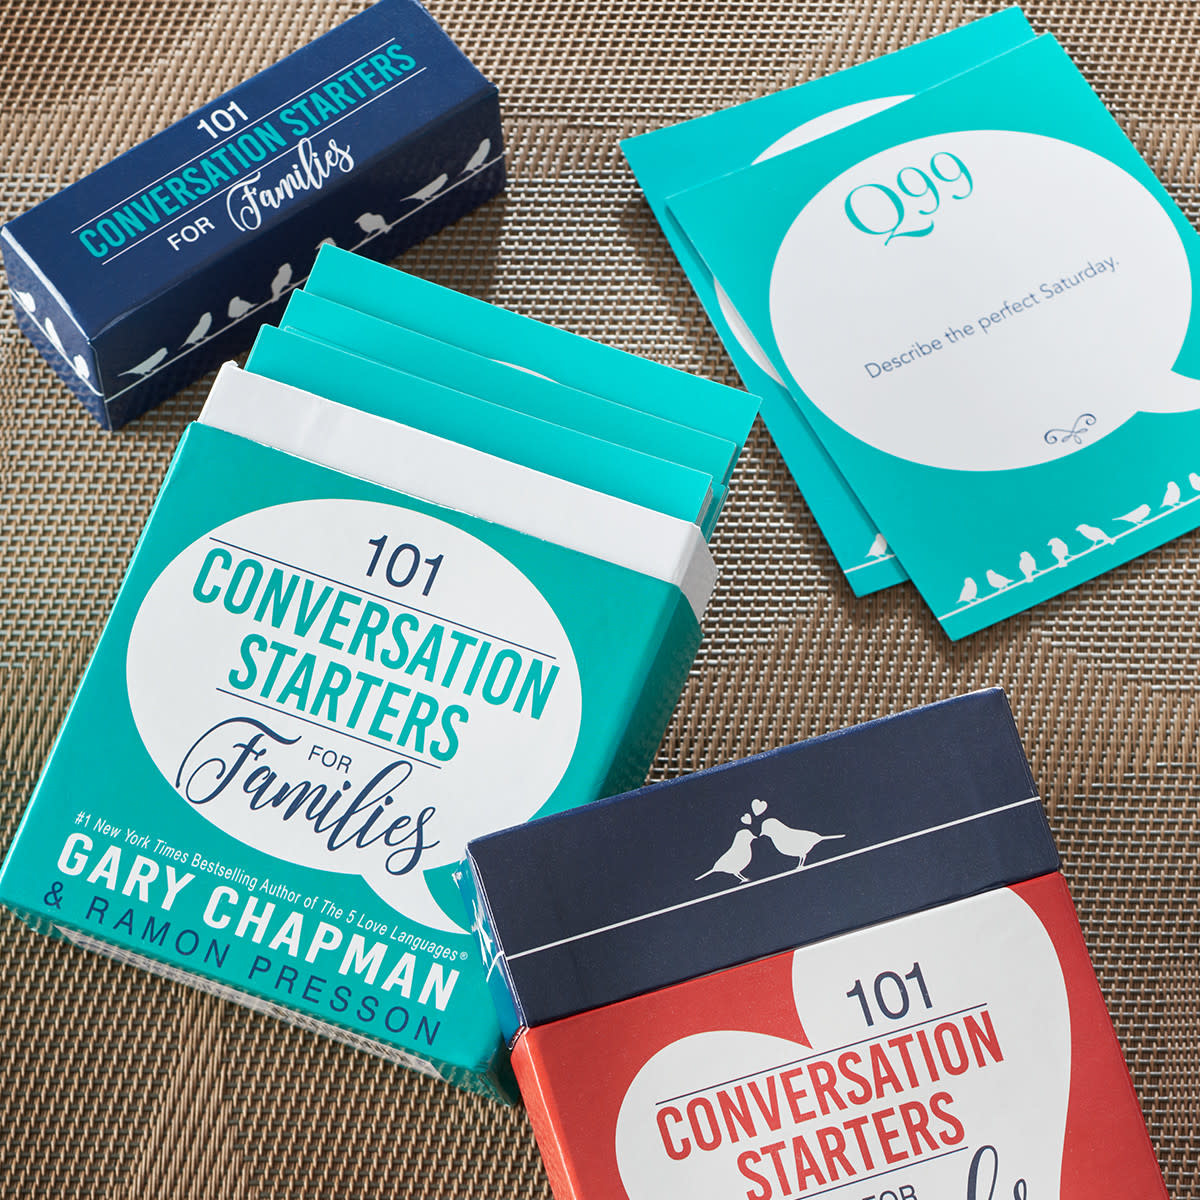 101 Conversation Starters for Families